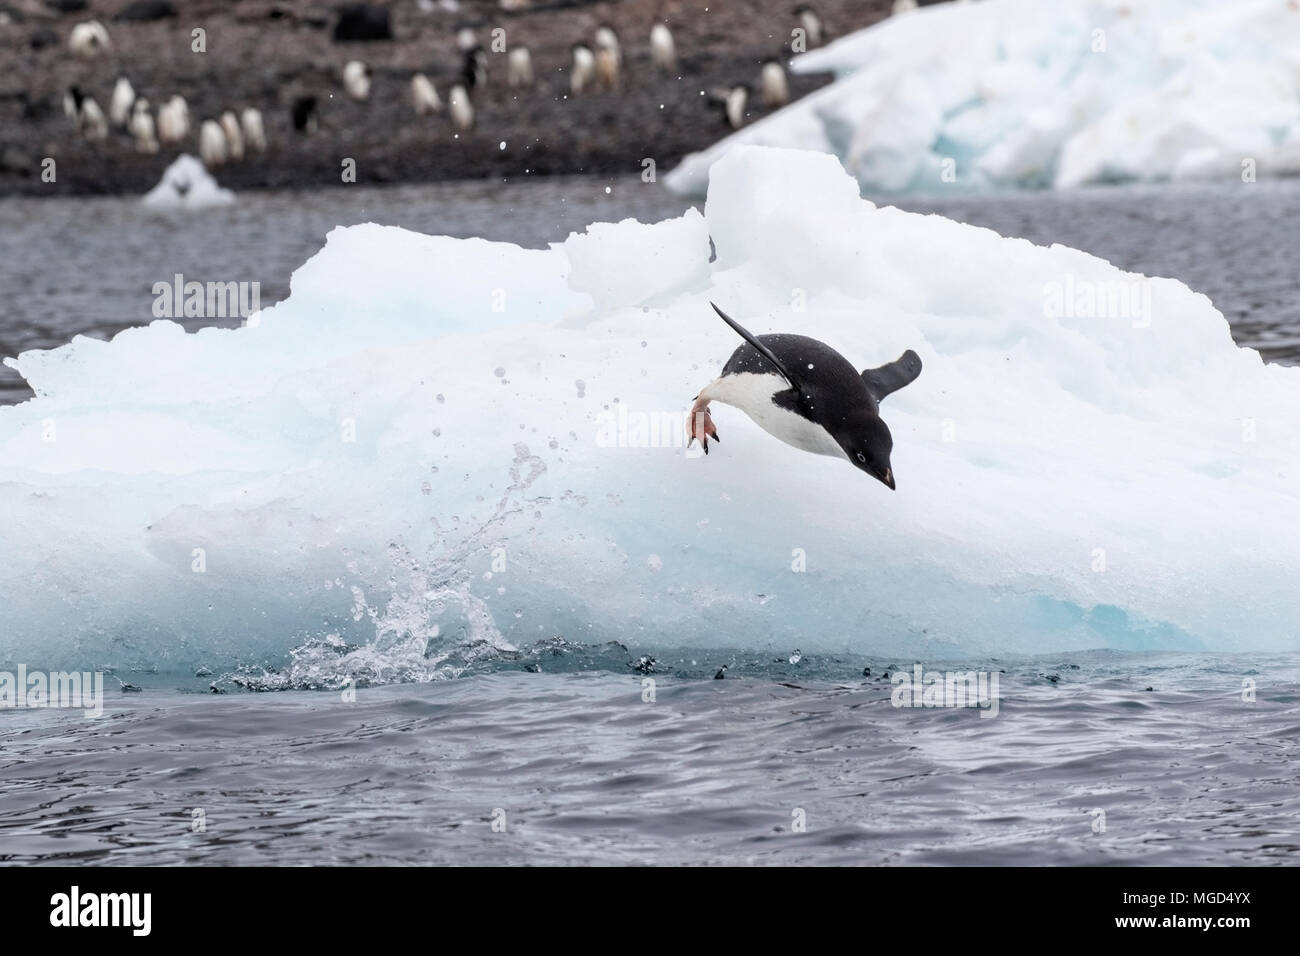 Adelie penguin Pygoscelis adeliae group of adults diving into sea from iceberg at breeding rookery or colony, Paulet Island, Weddell Sea, Antarctica - Stock Image